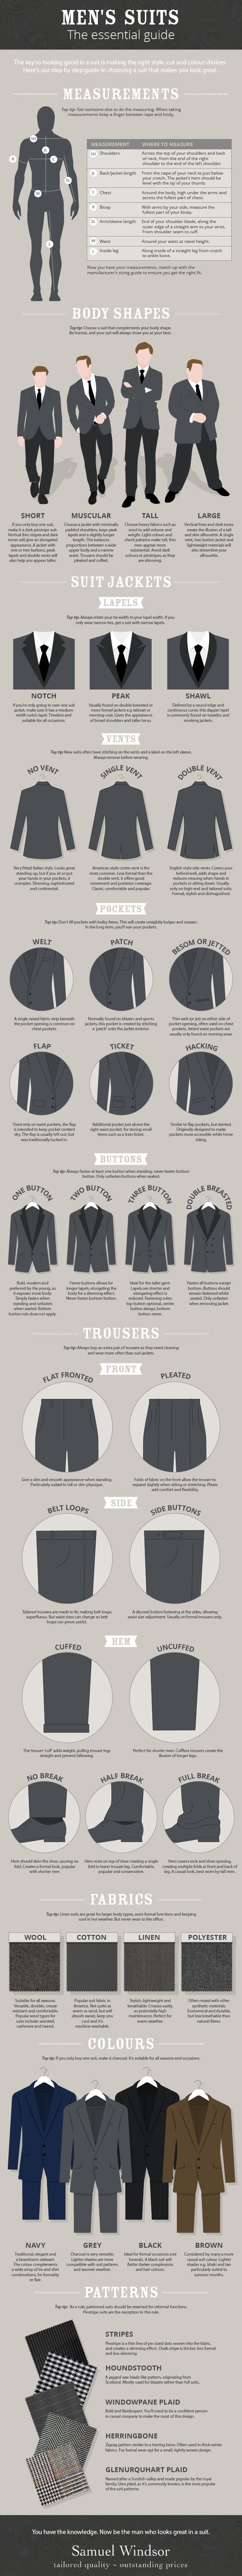 Buying a new suit? Confused by all the different choices? Read out the essential infographic guide from Samuel Windsor to ensure you make the right decisions. If you're not sure whether you want a full break or half break, or whether you should choose a flaps or welts for your pockets, this guide will help.: